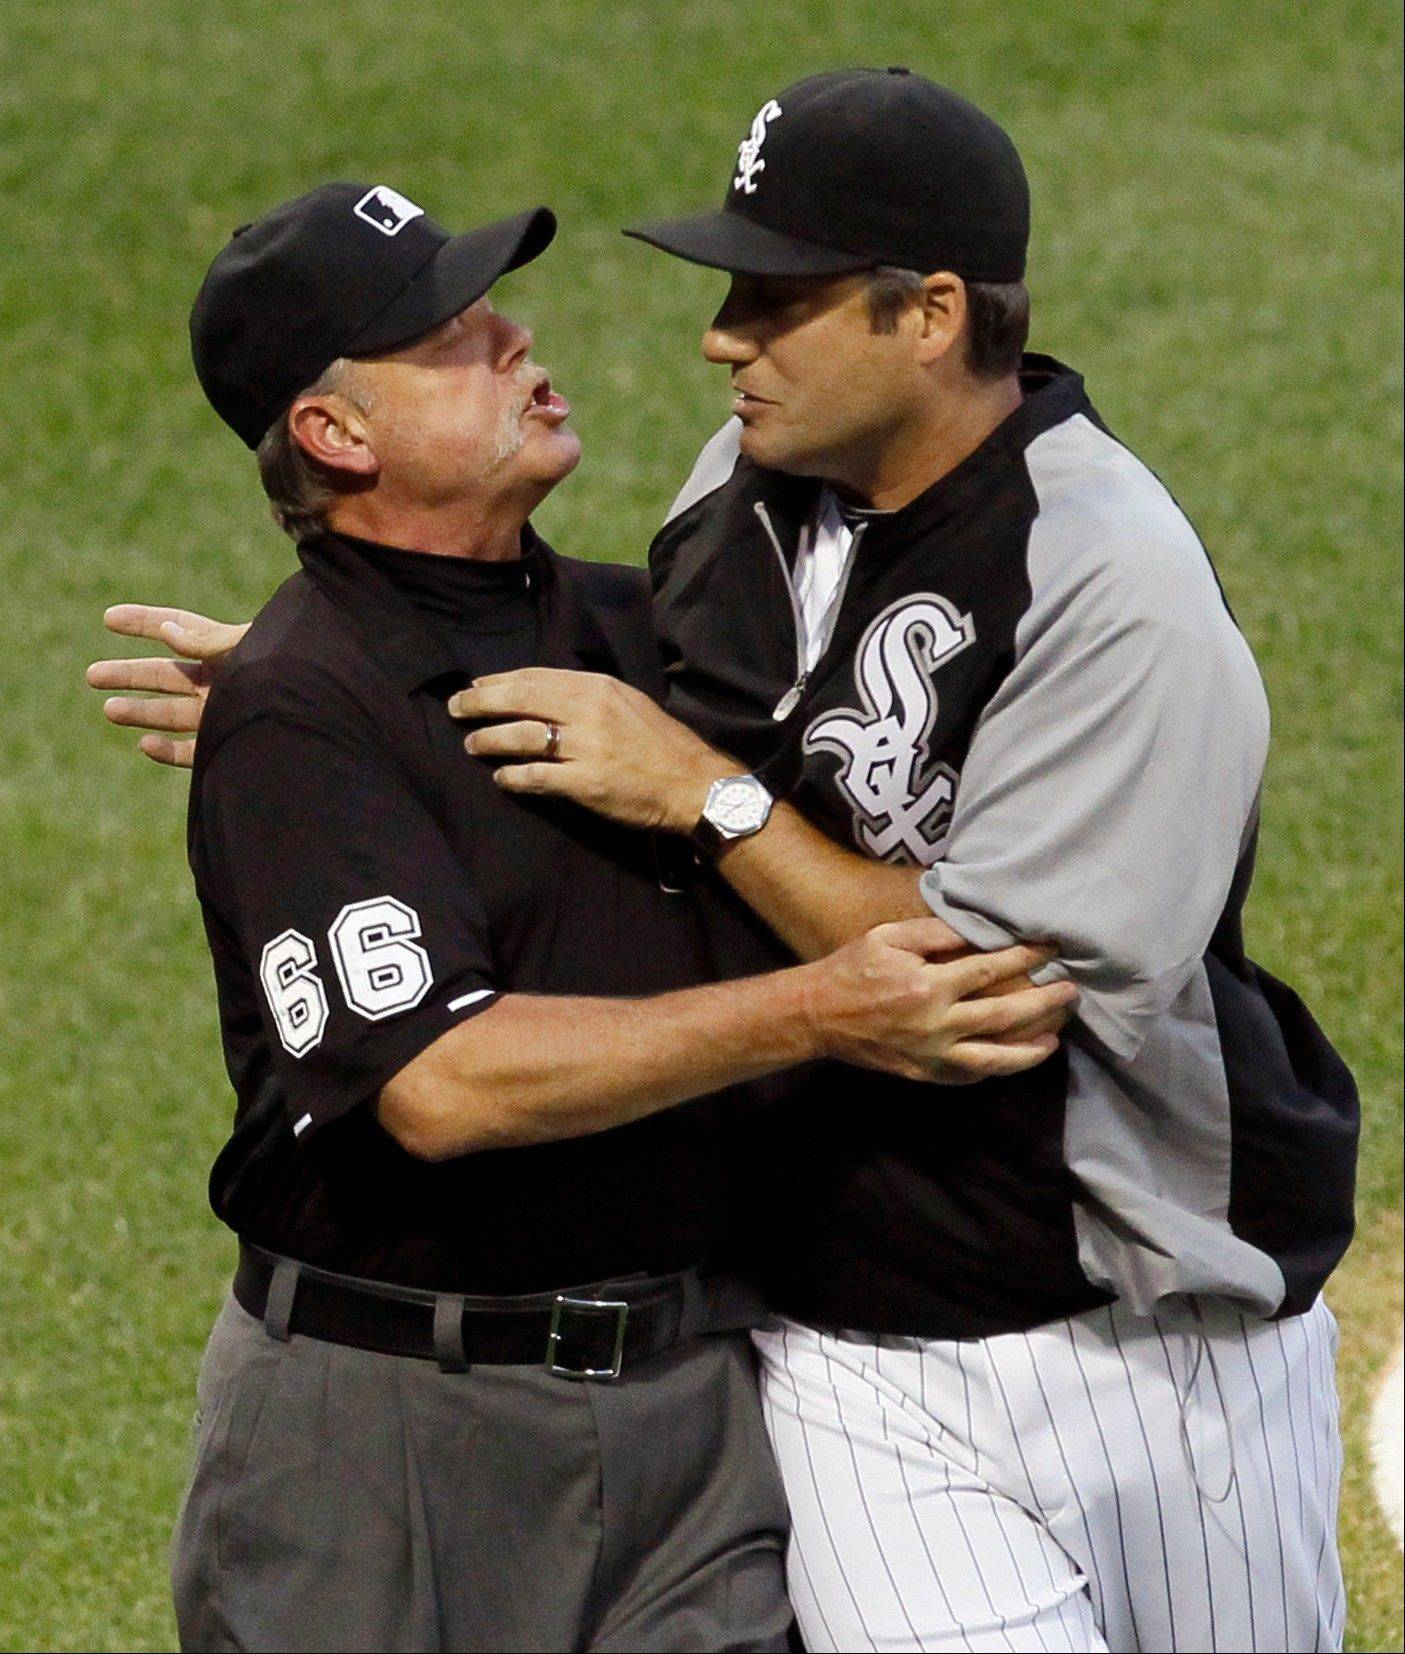 Umpire crew chief Jim Joyce, left, keeps Chicago White Sox manager Robin Ventura away from home plate umpire Lance Barrett after Barrett ejected catcher A.J. Pierzynski and Ventura from the baseball game during the third inning against the Seattle Mariners, Saturday, Aug. 25, 2012, in Chicago.